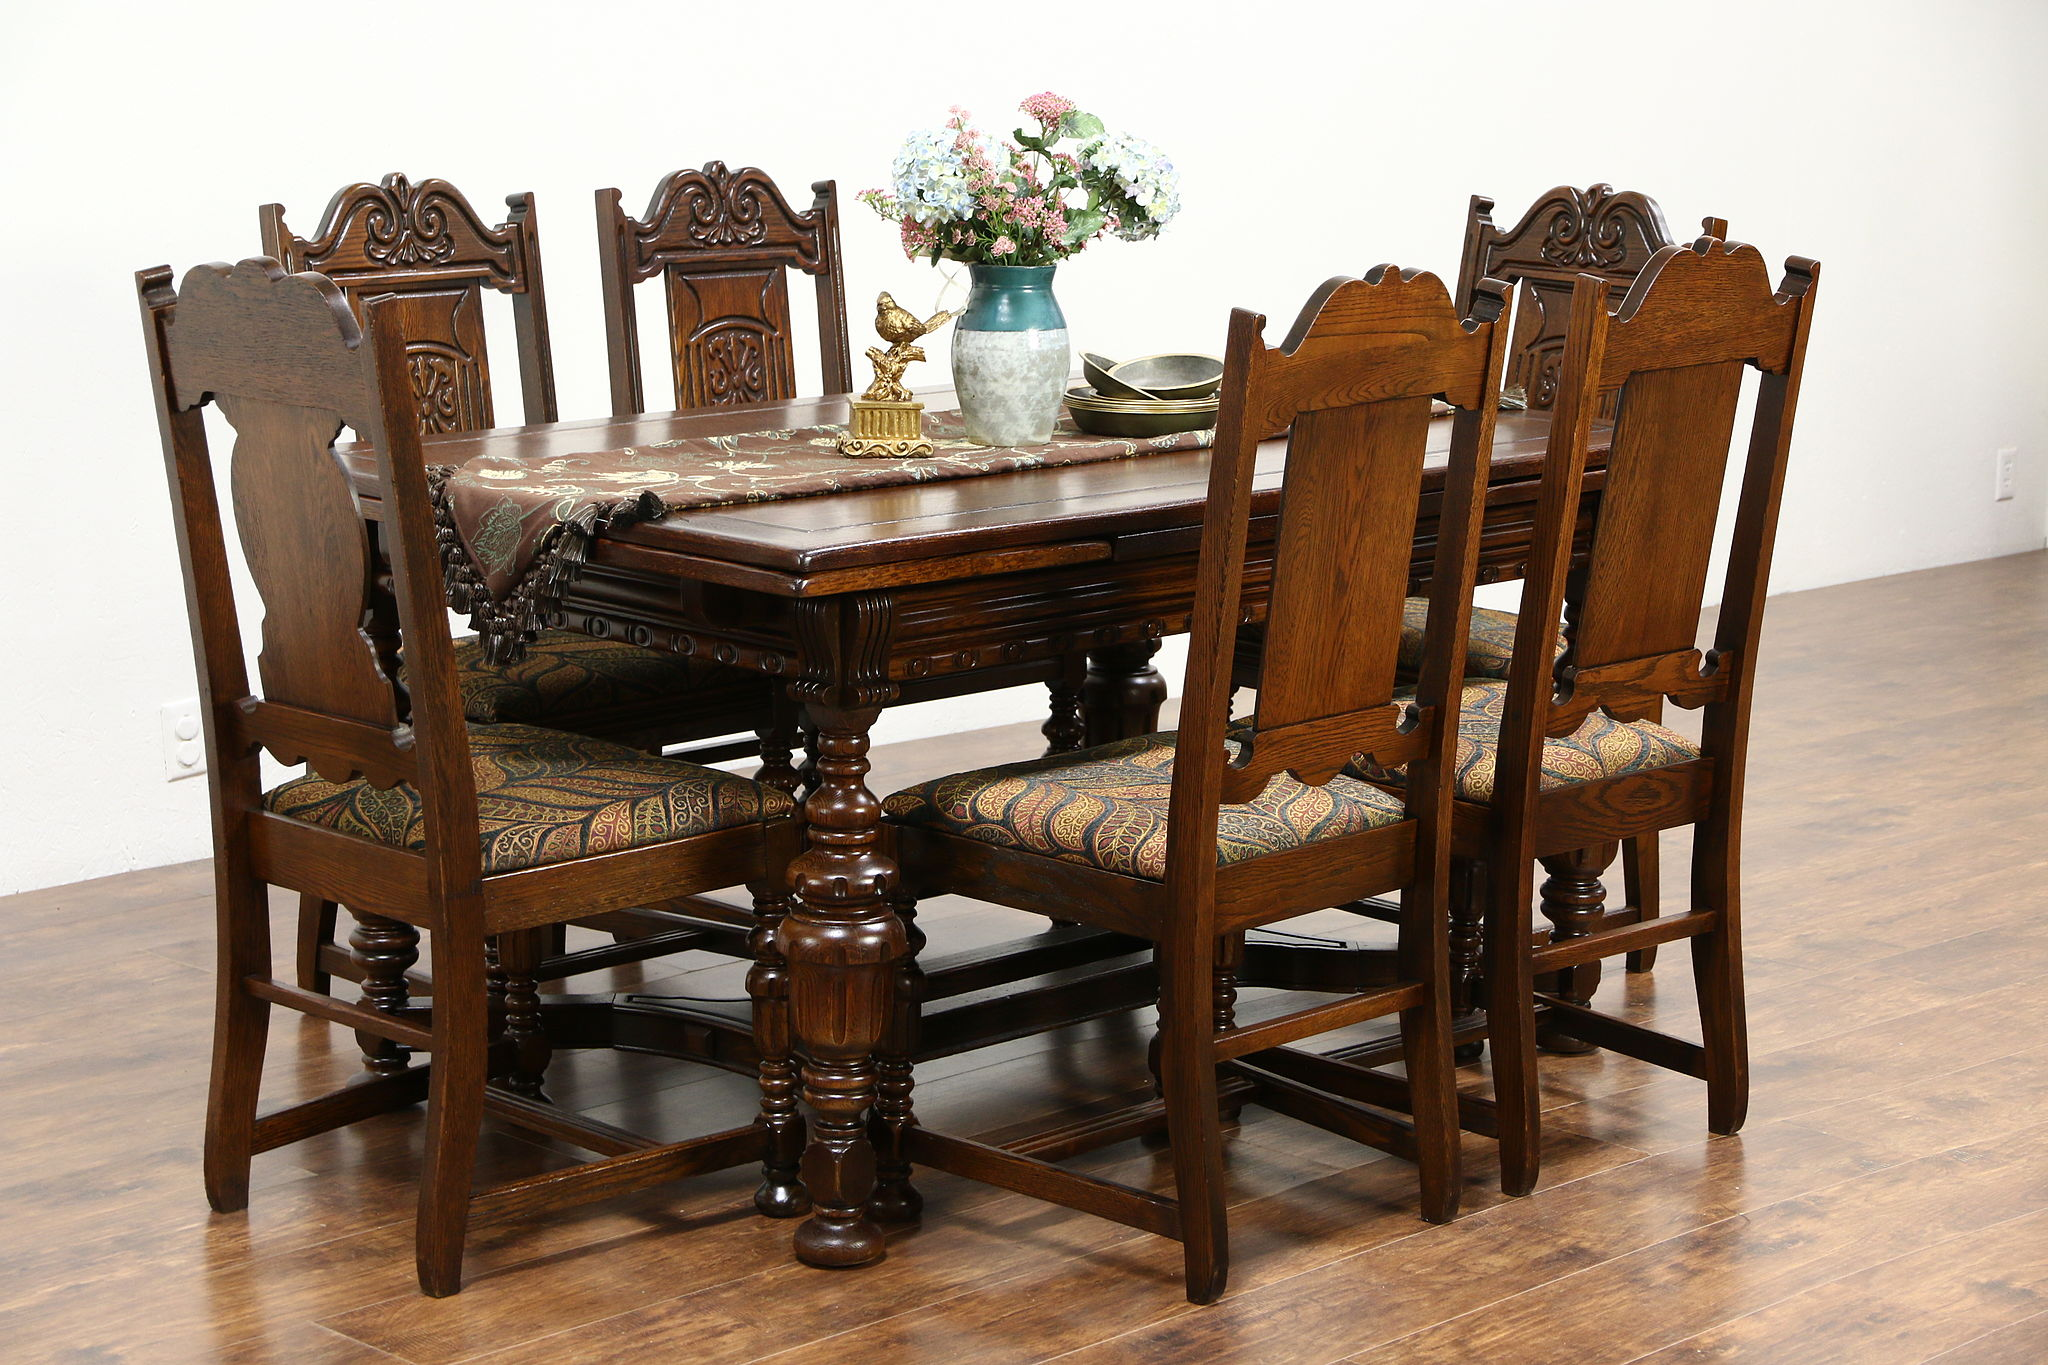 Sold Tudor 1925 Antique Carved Oak Dining Set Table 6 Chairs New Upholstery Harp Gallery Antiques Furniture